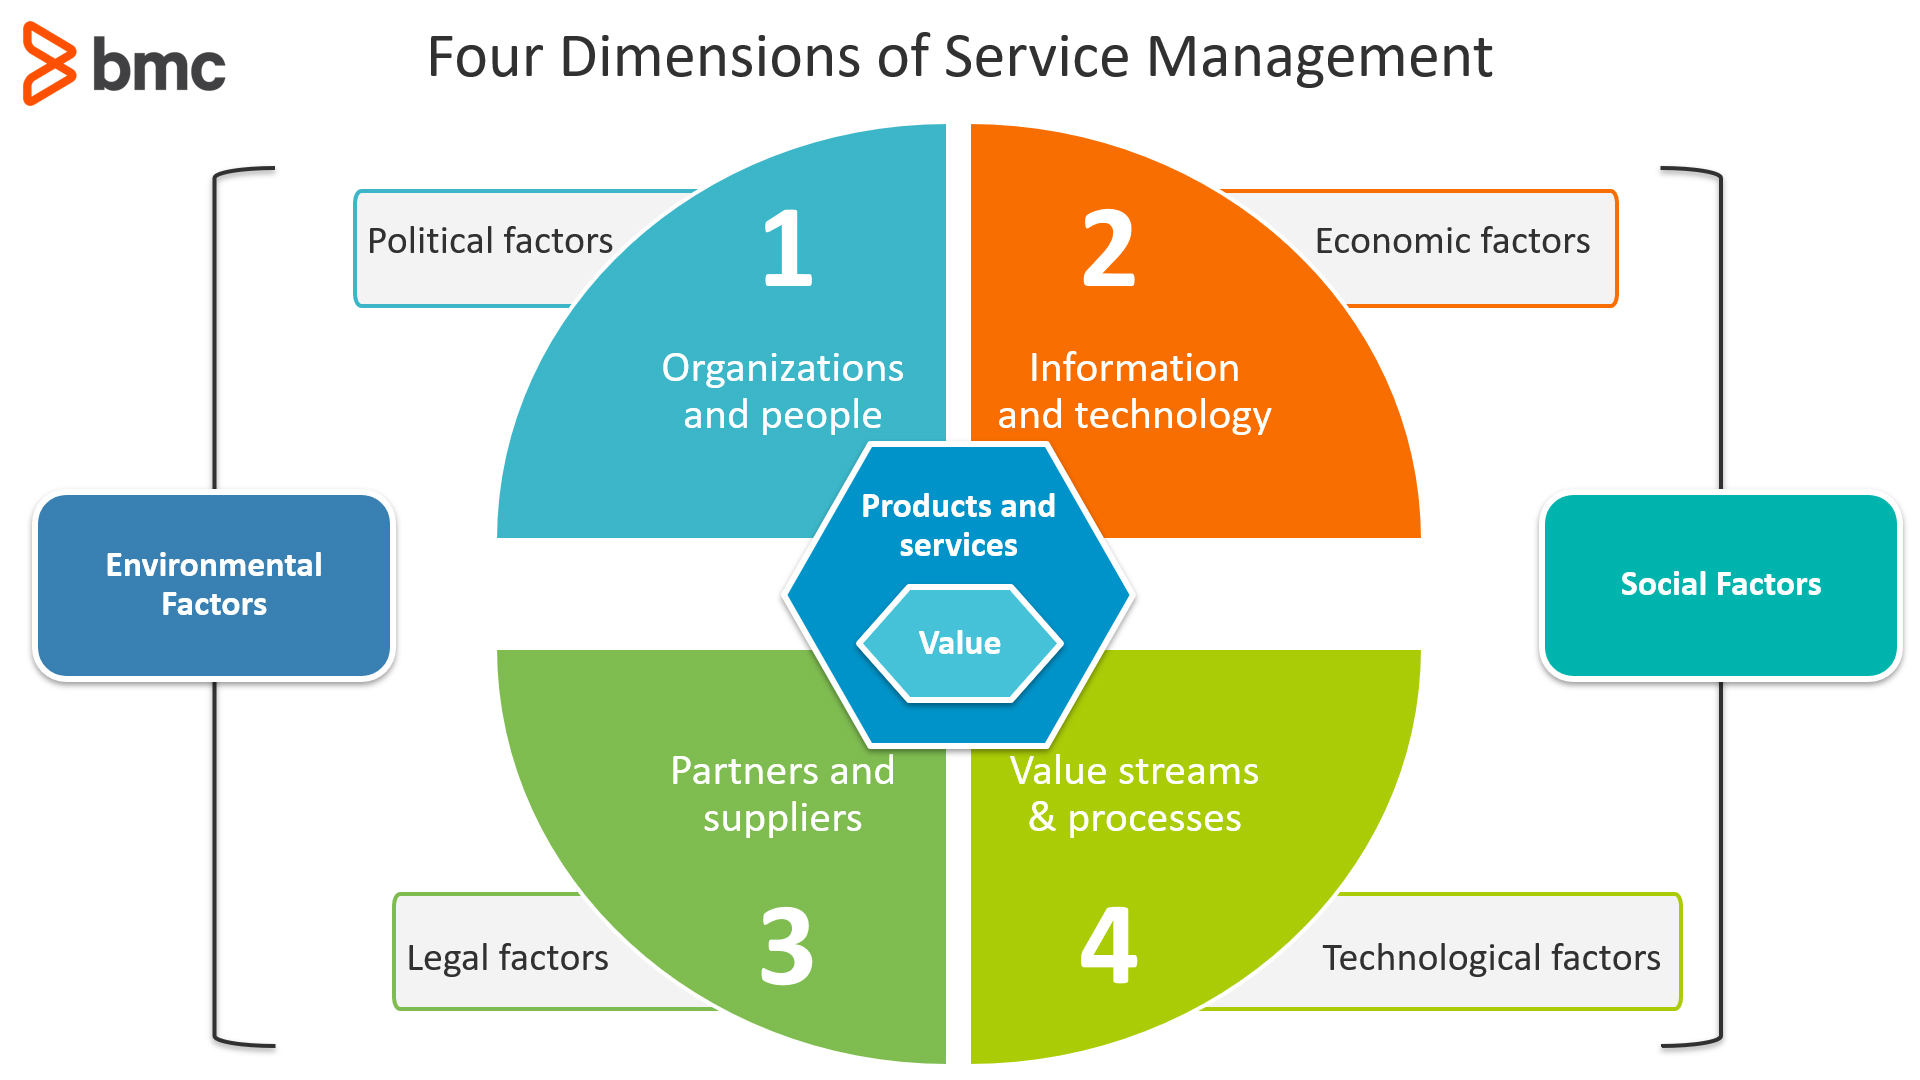 hight resolution of environmental climate change is impacting how organizations view their services and service delivery customers are becoming keen on purchasing services